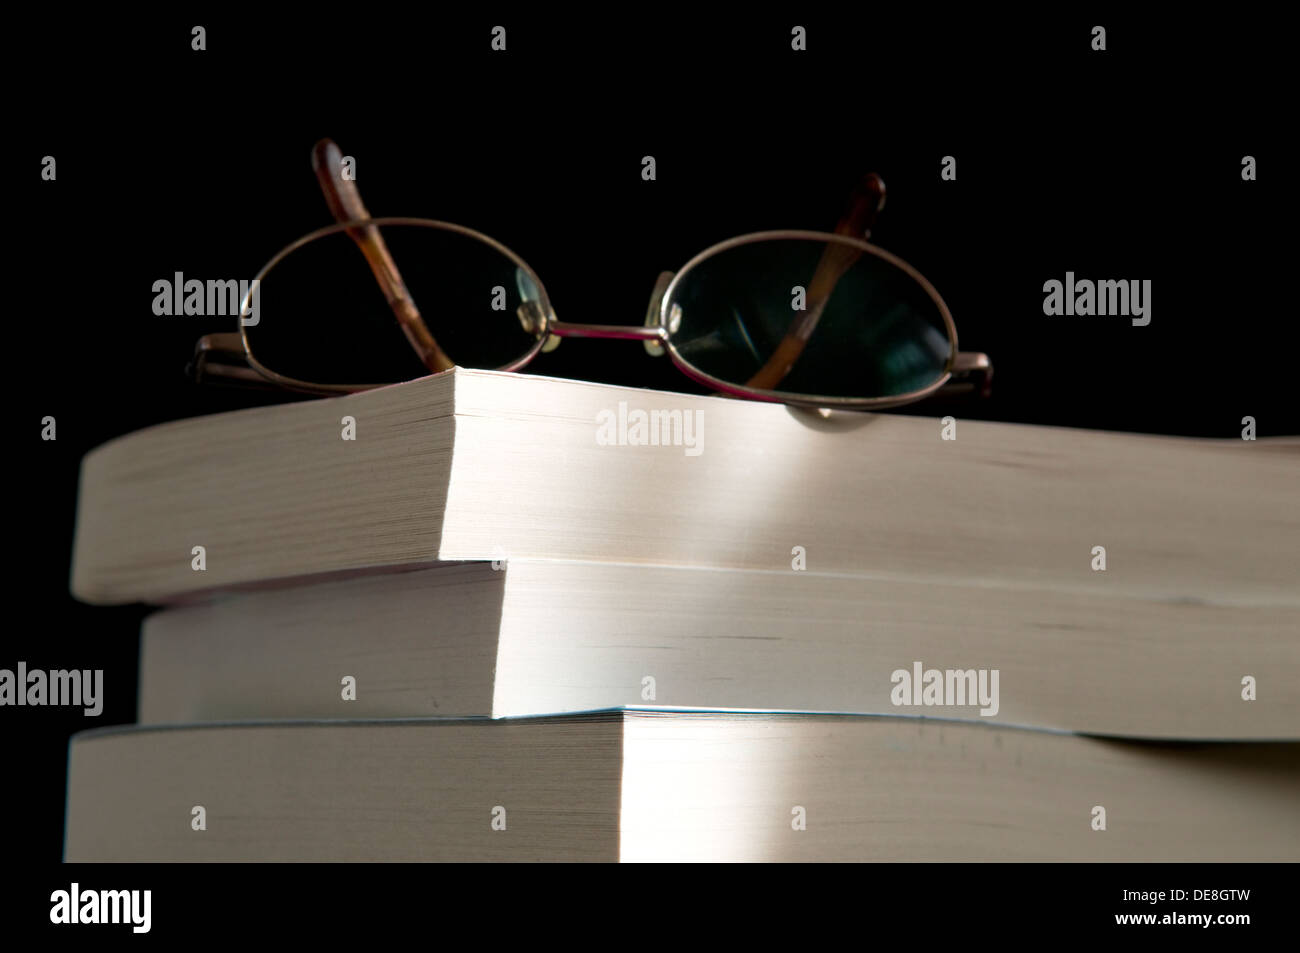 Pile of reading books on old wooden desk top, concept of learning and education, or relaxation - Stock Image